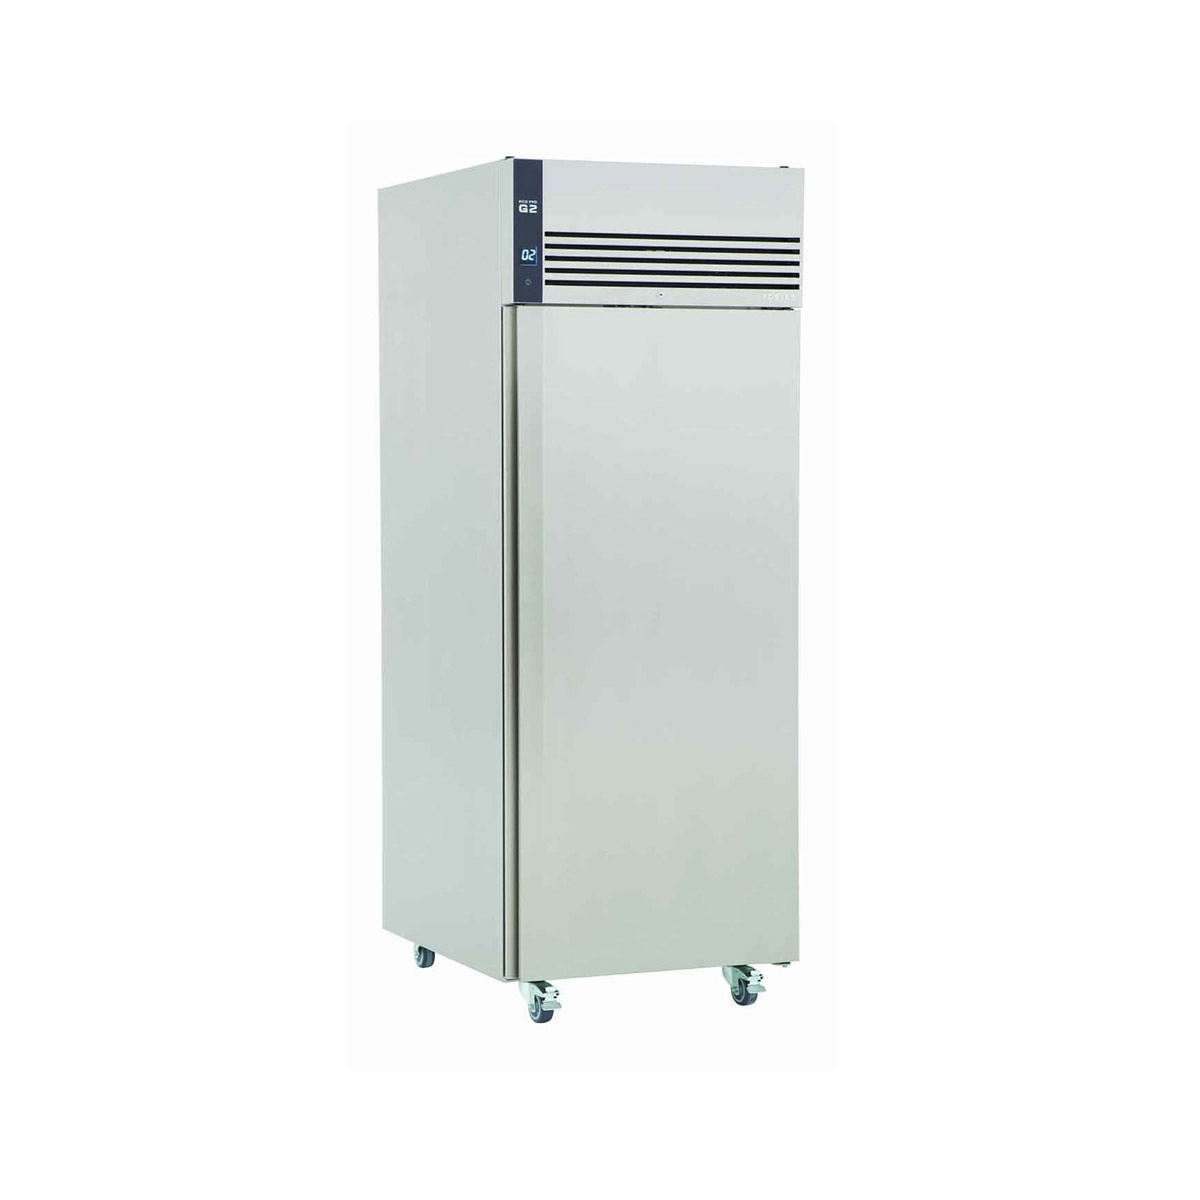 Foster EcoPro G2 EP700L (10-106) 600 Ltr Stainless Steel Single Door Upright Freezer